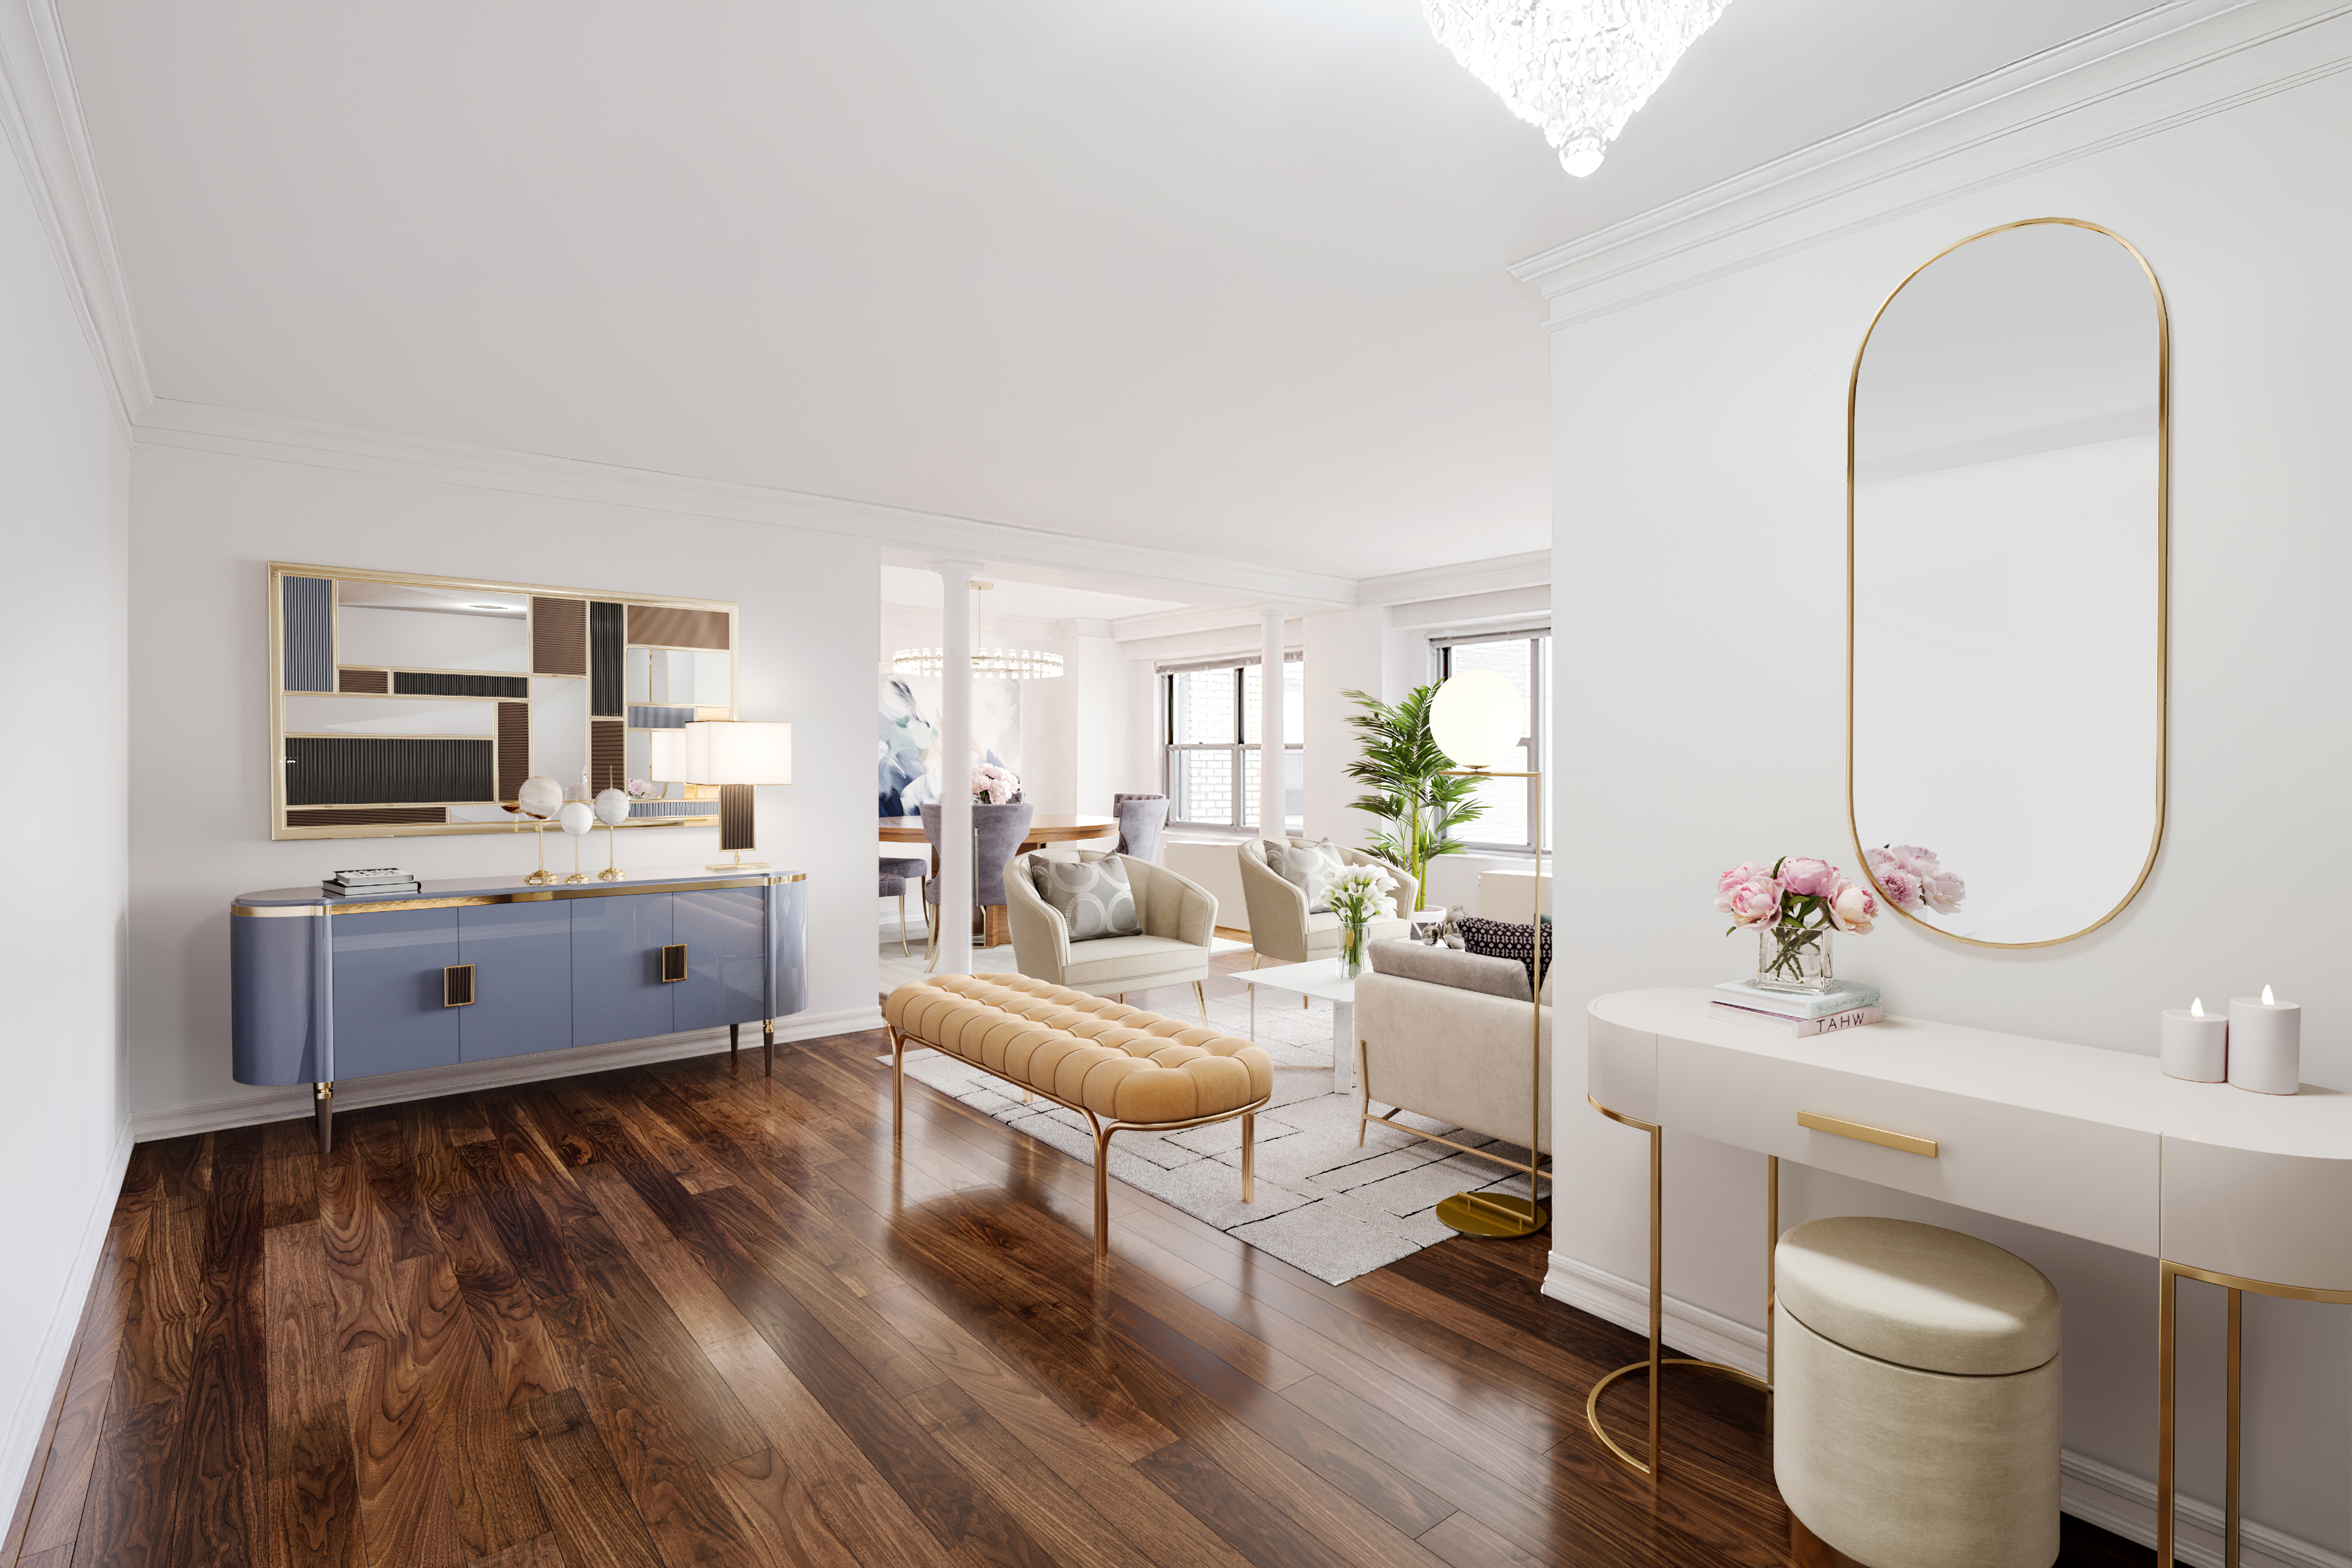 primary photo for 400 East 56th Street 21-E, New York, NY 10022, US